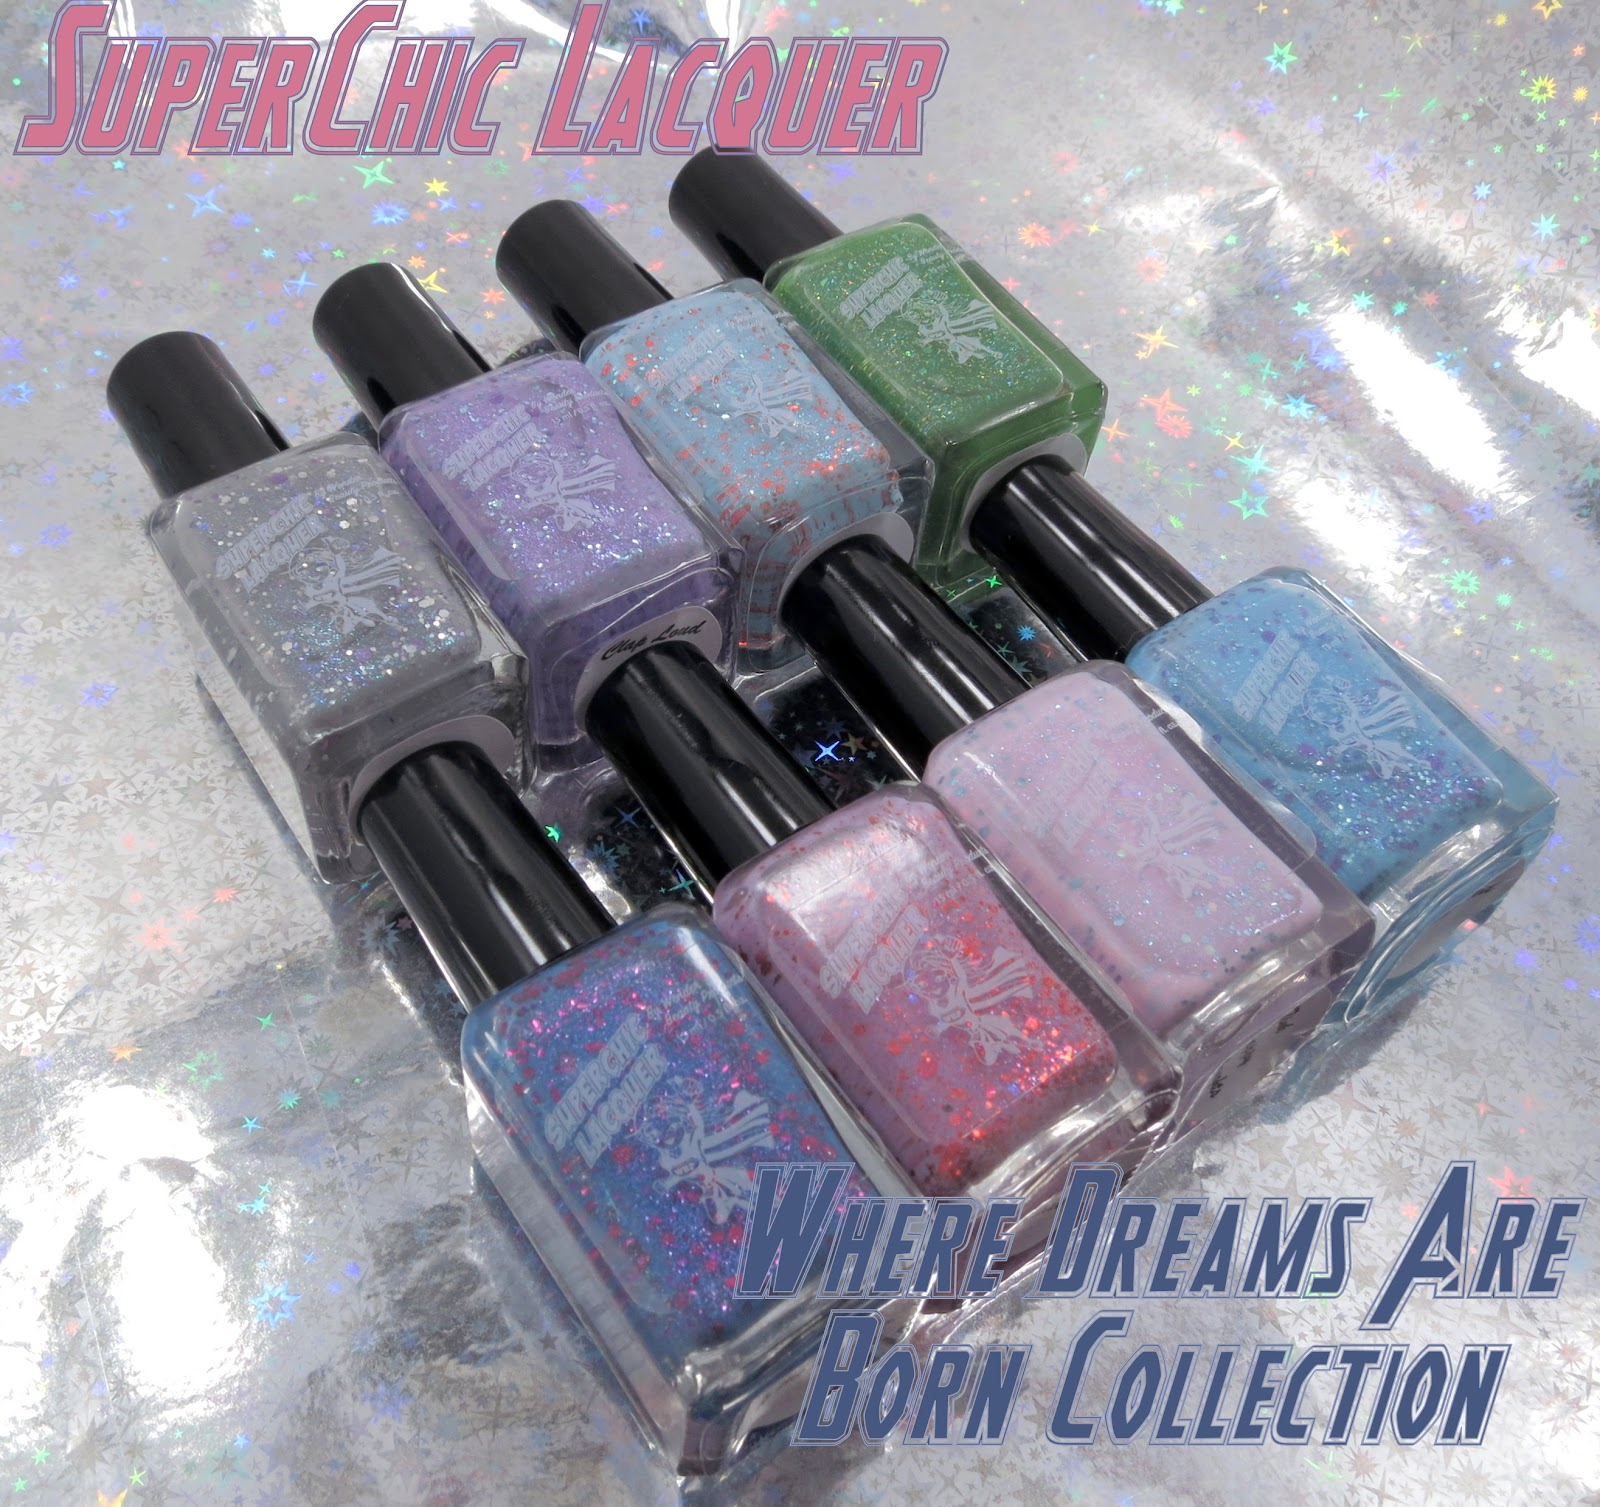 SuperChic Lacquer Where Dreams Are Born Collection